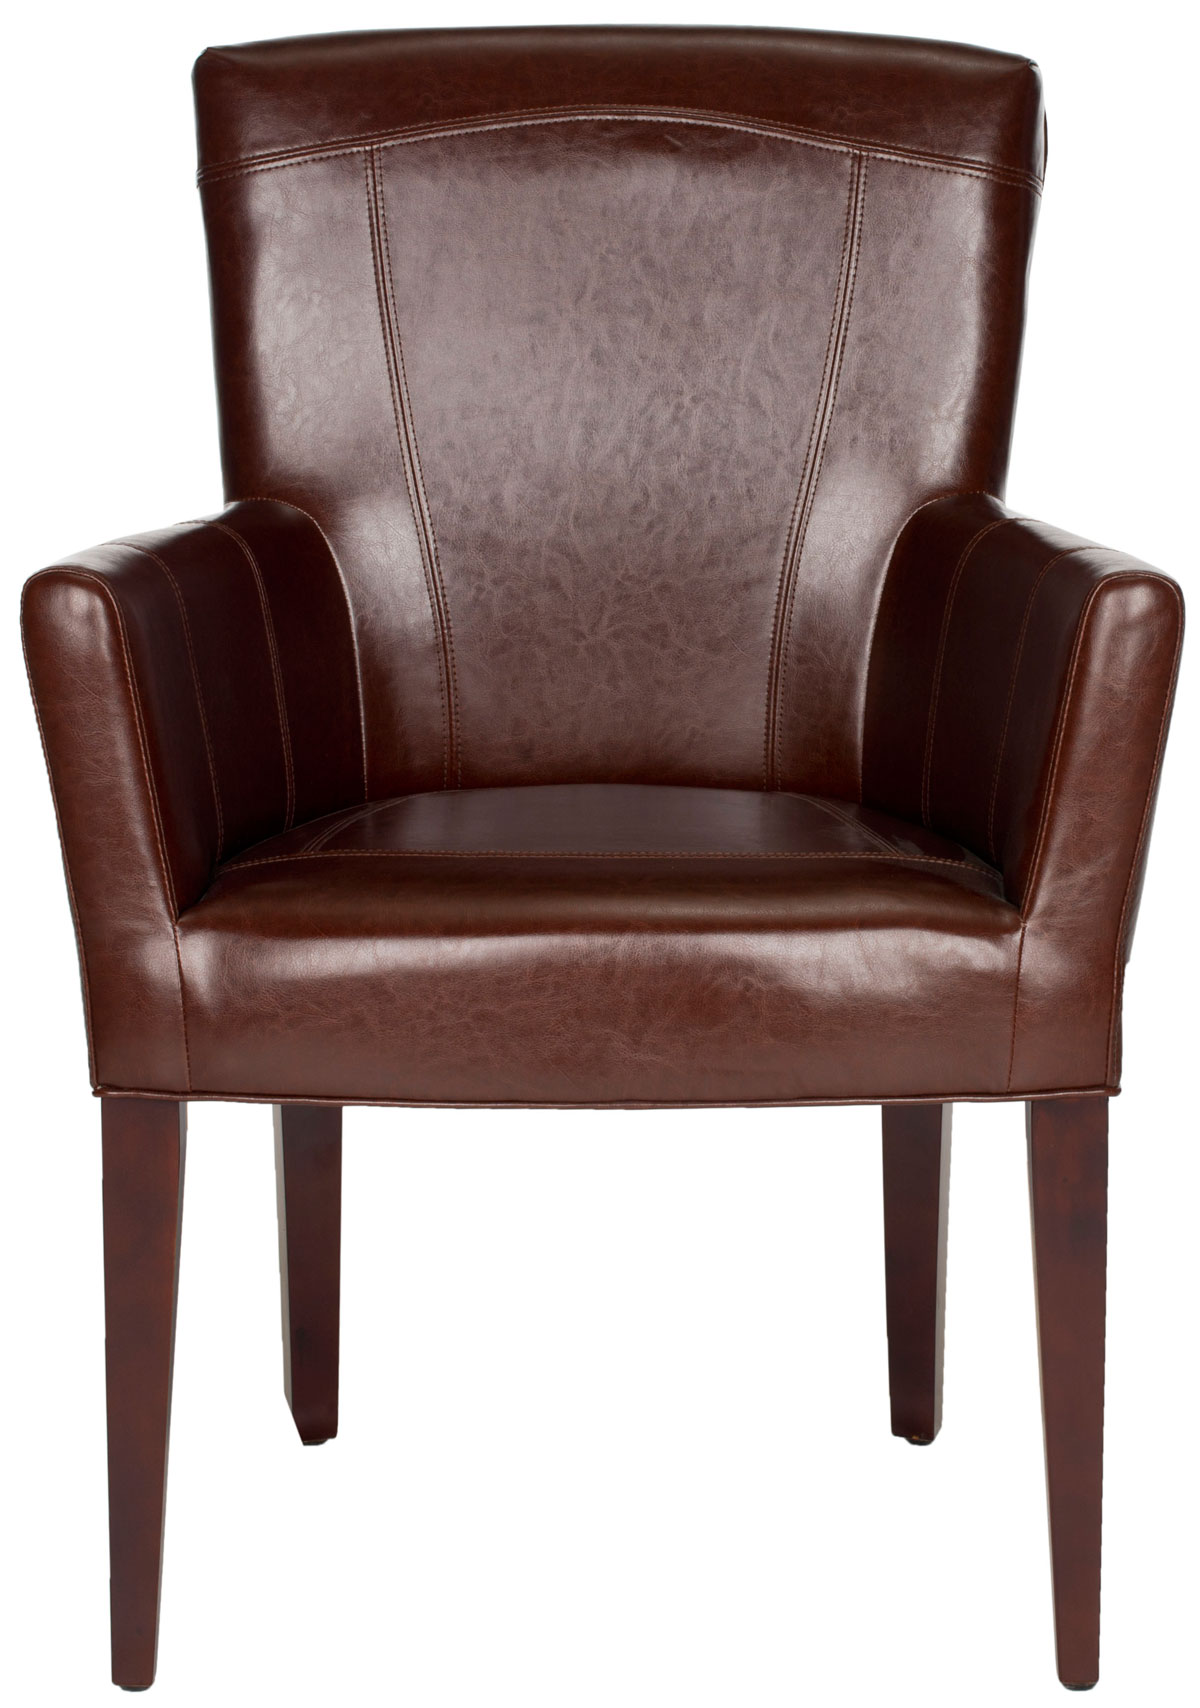 Leather Chairs Target Mcr4710a Accent Chairs Furniture By Safavieh